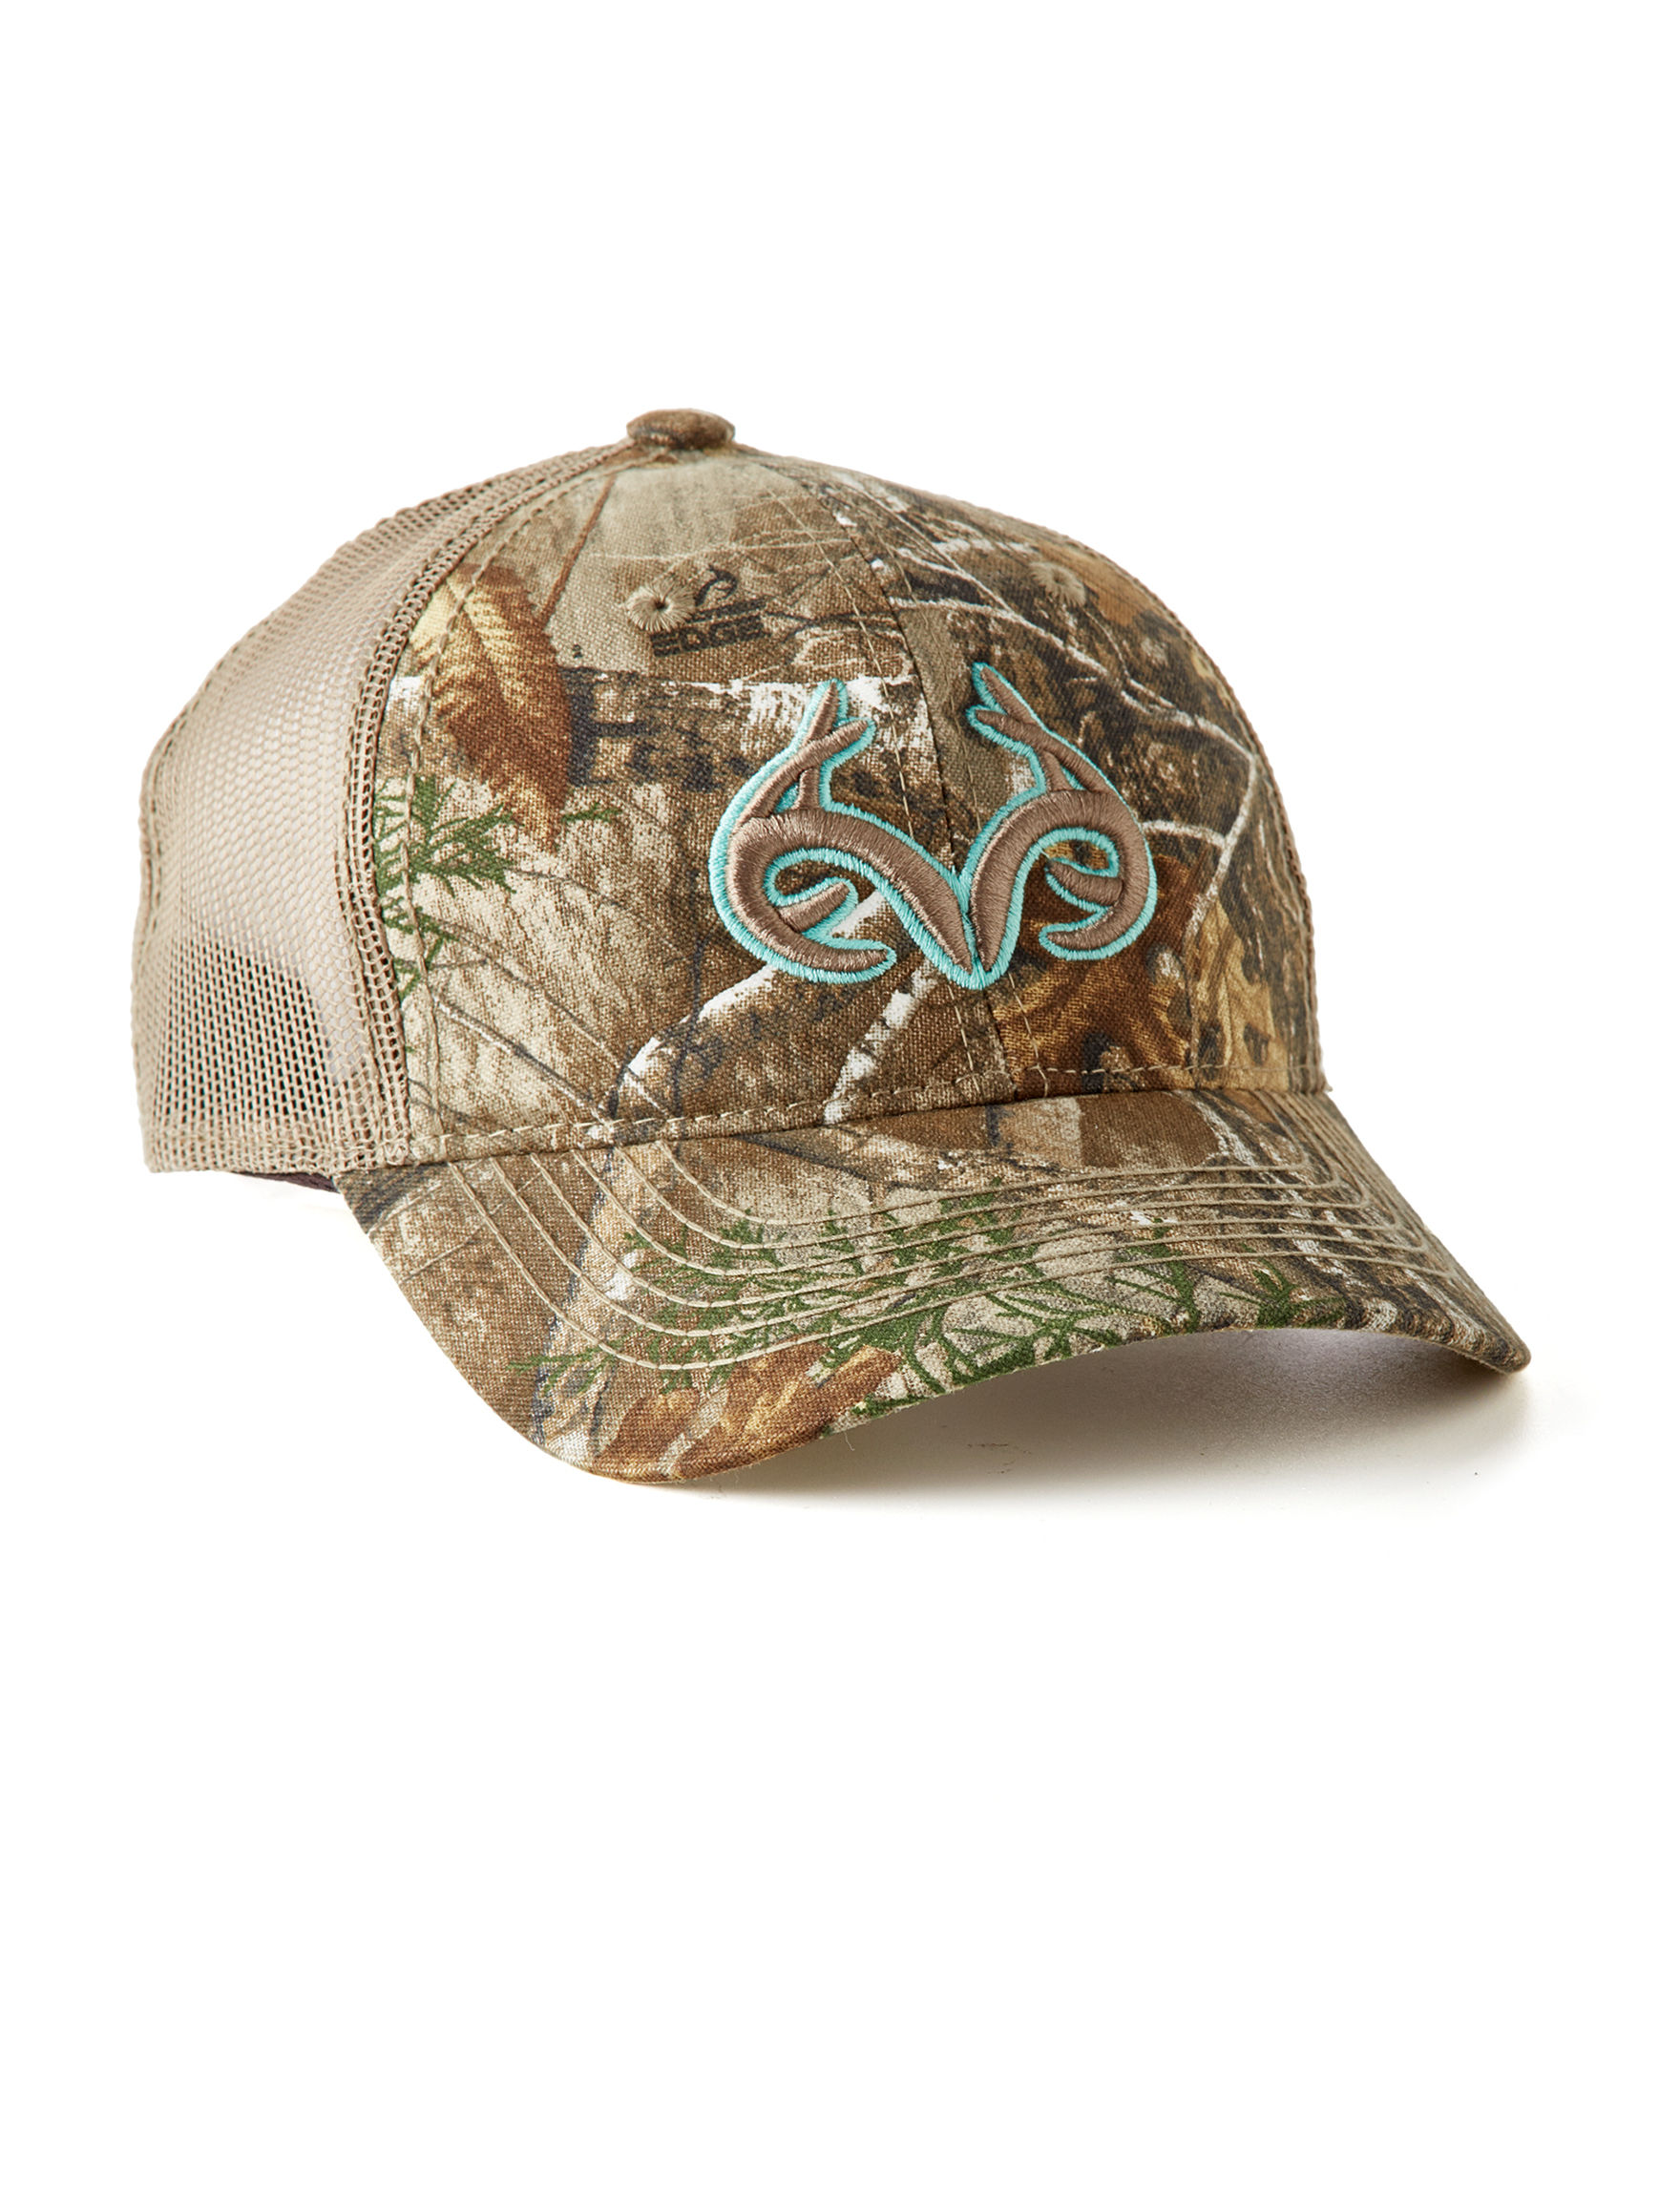 Realtree Brown Camo Hats & Headwear